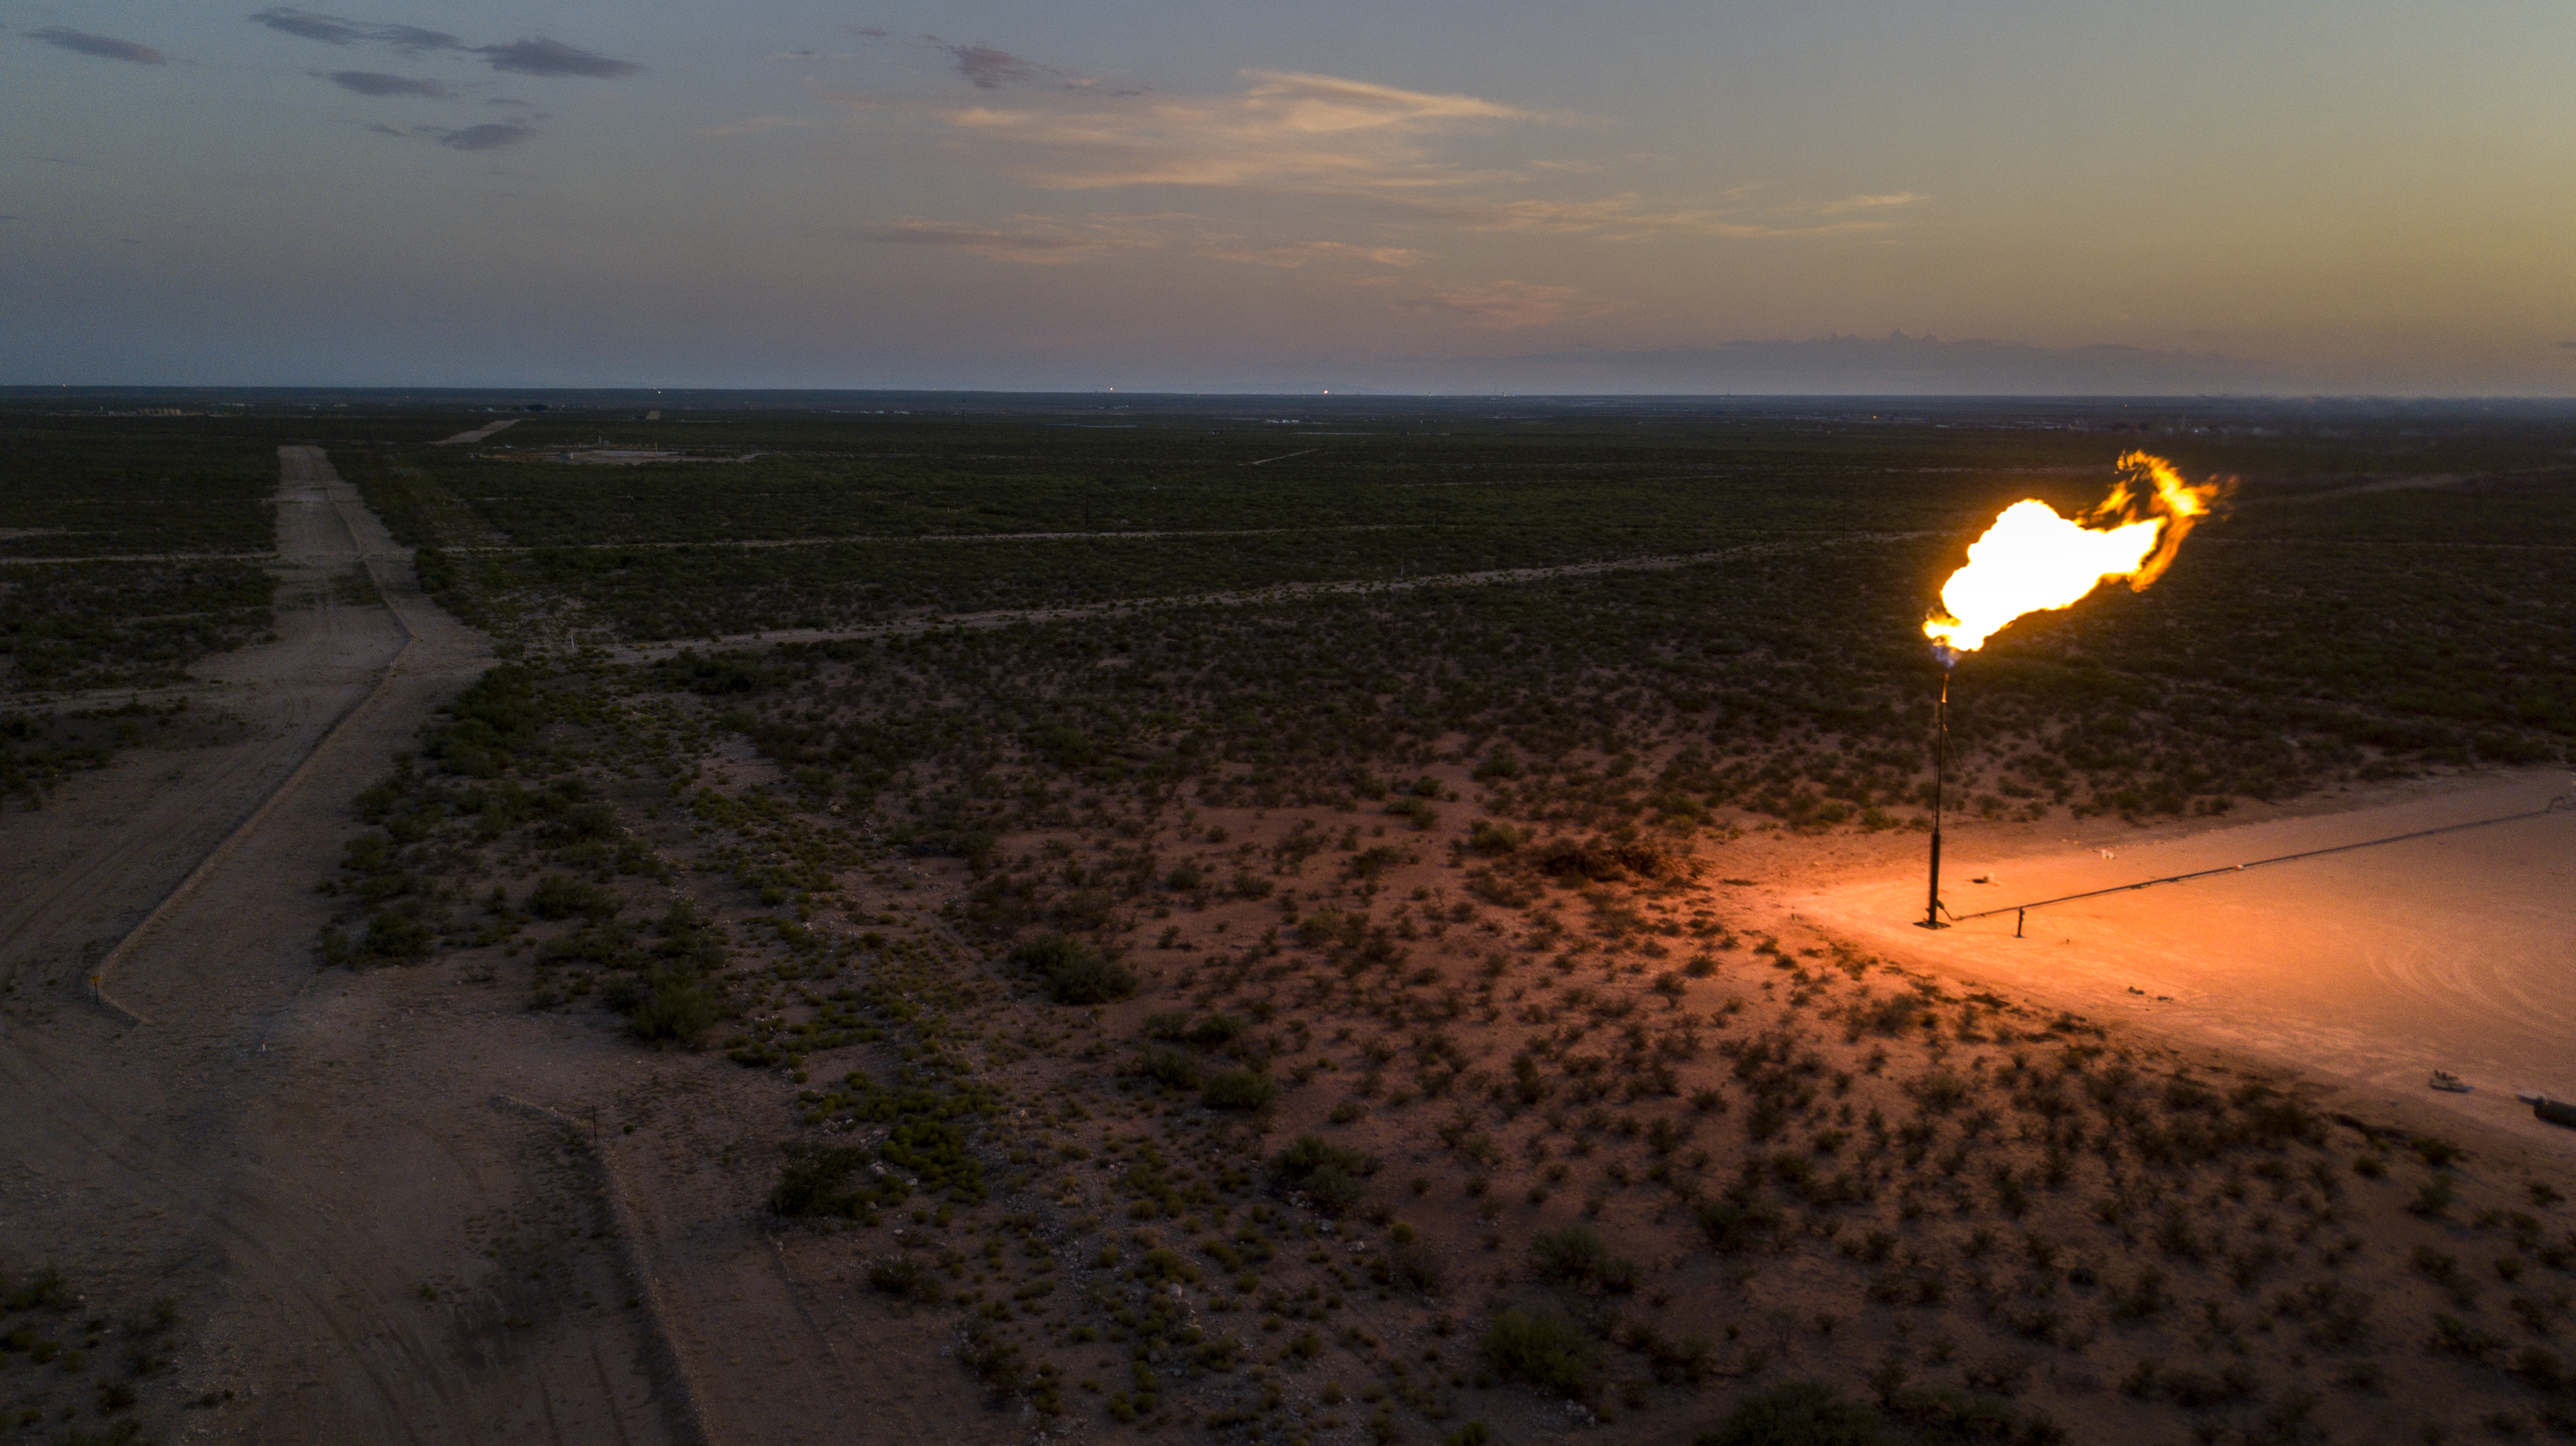 A vertical pipe in the middle of nowhere with a gas flare burning from its top.